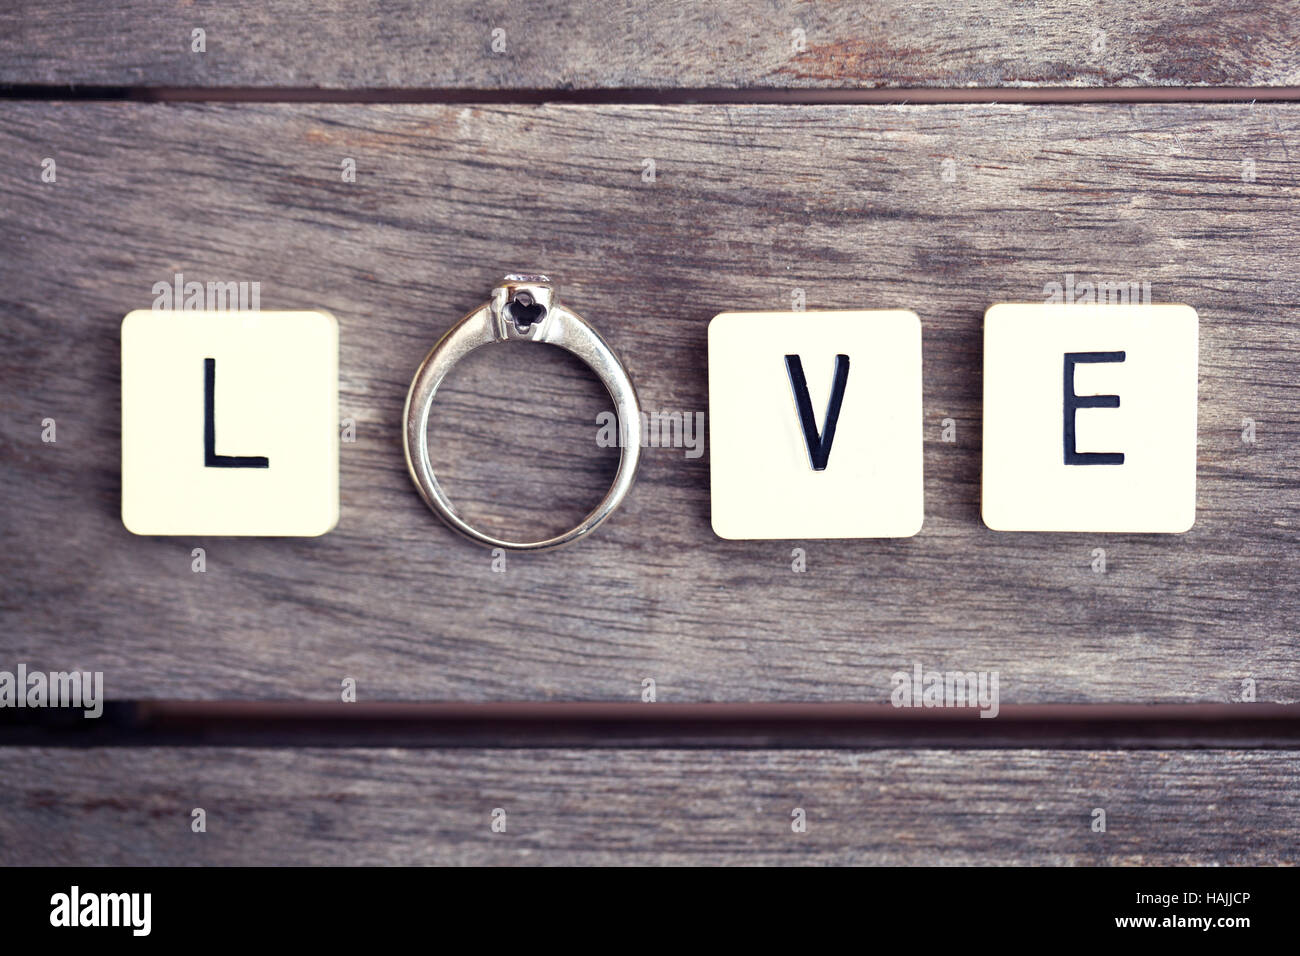 Letter tiles and ring spelling the word 'LOVE'. Conceptual picture for love, wedding, mariage, engagement, - Stock Image